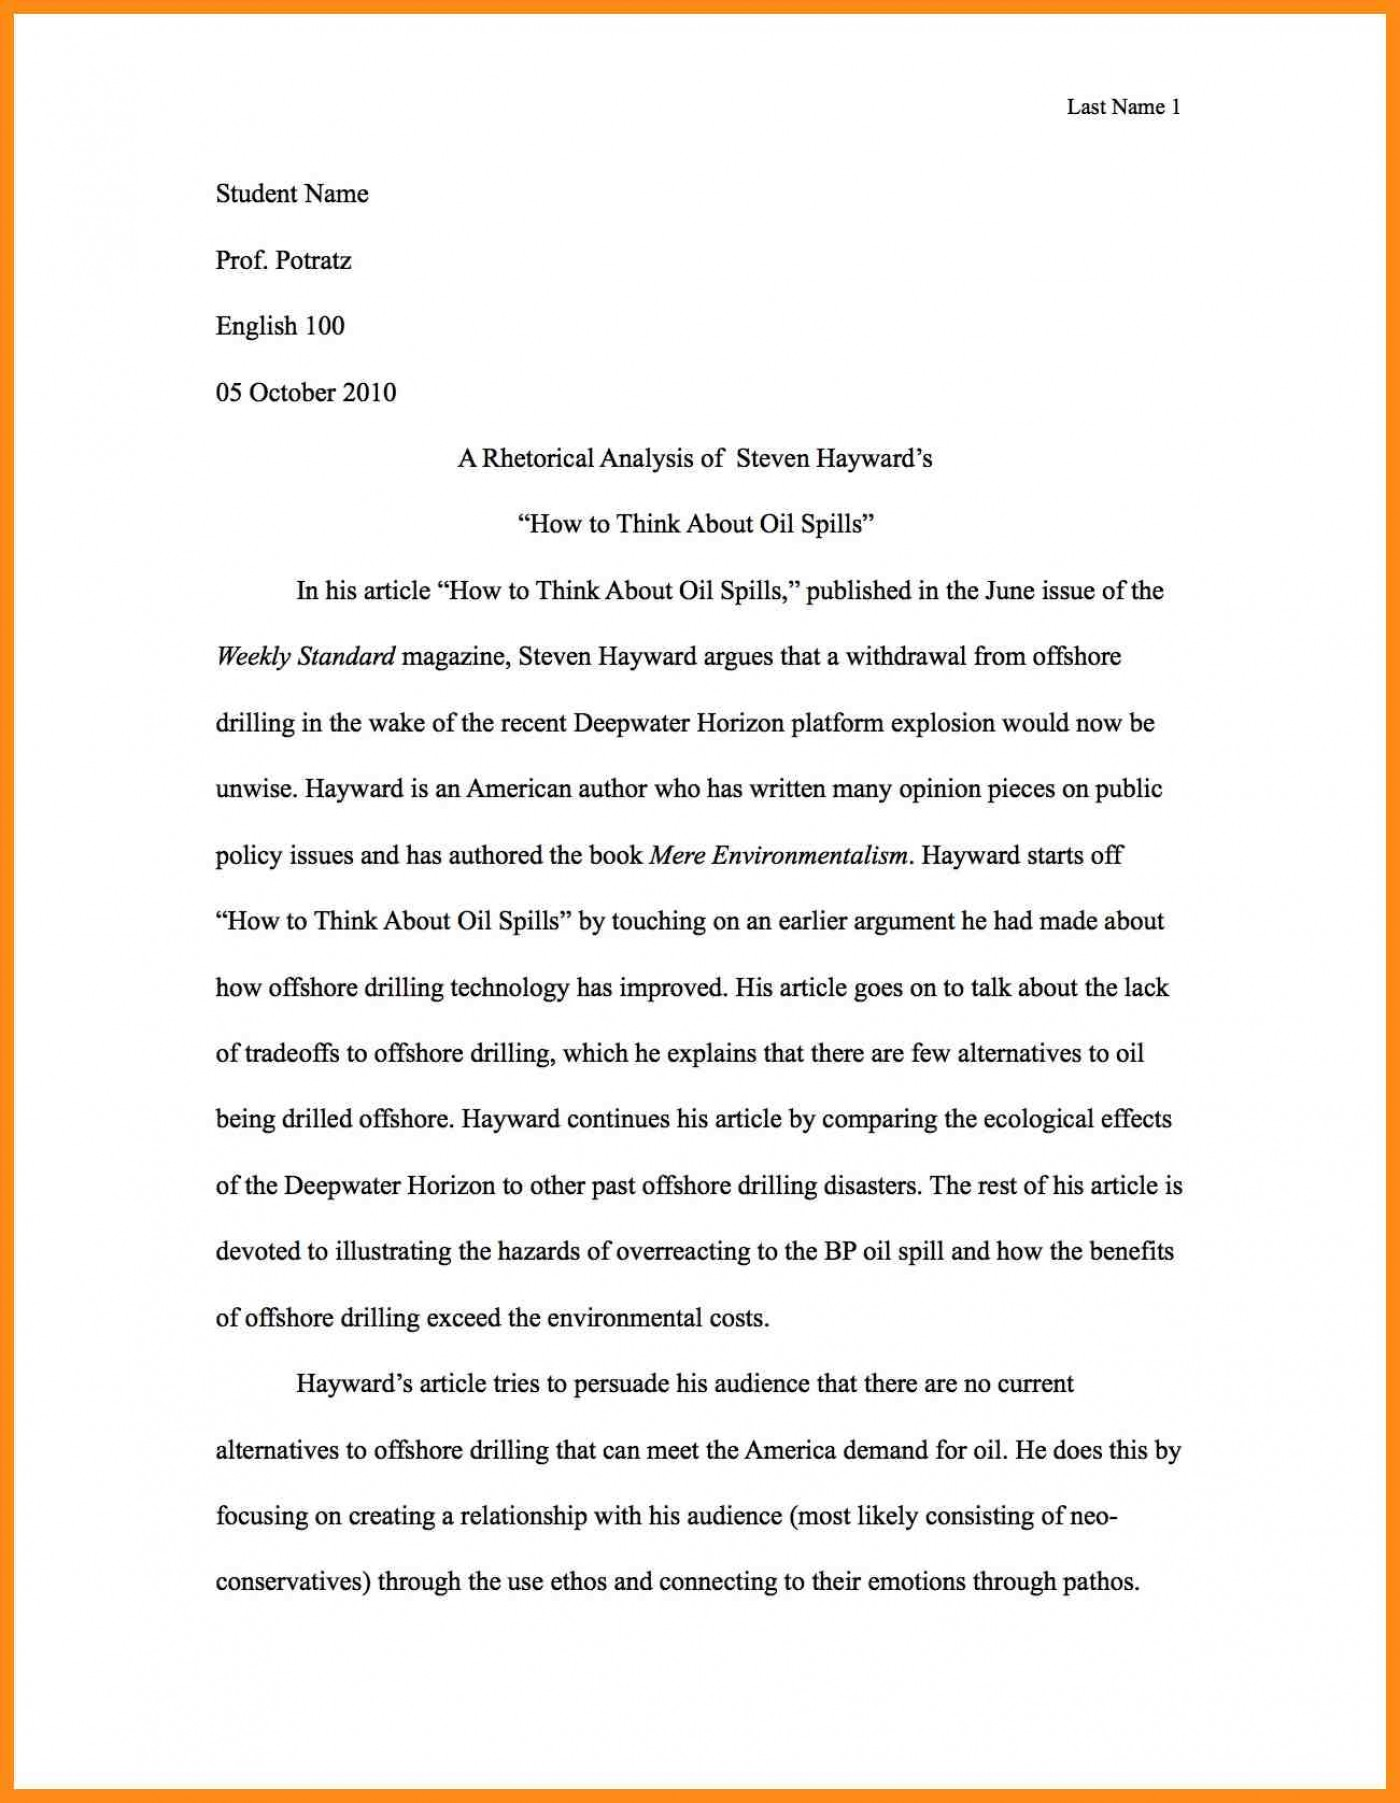 Lady macbeth evil essay